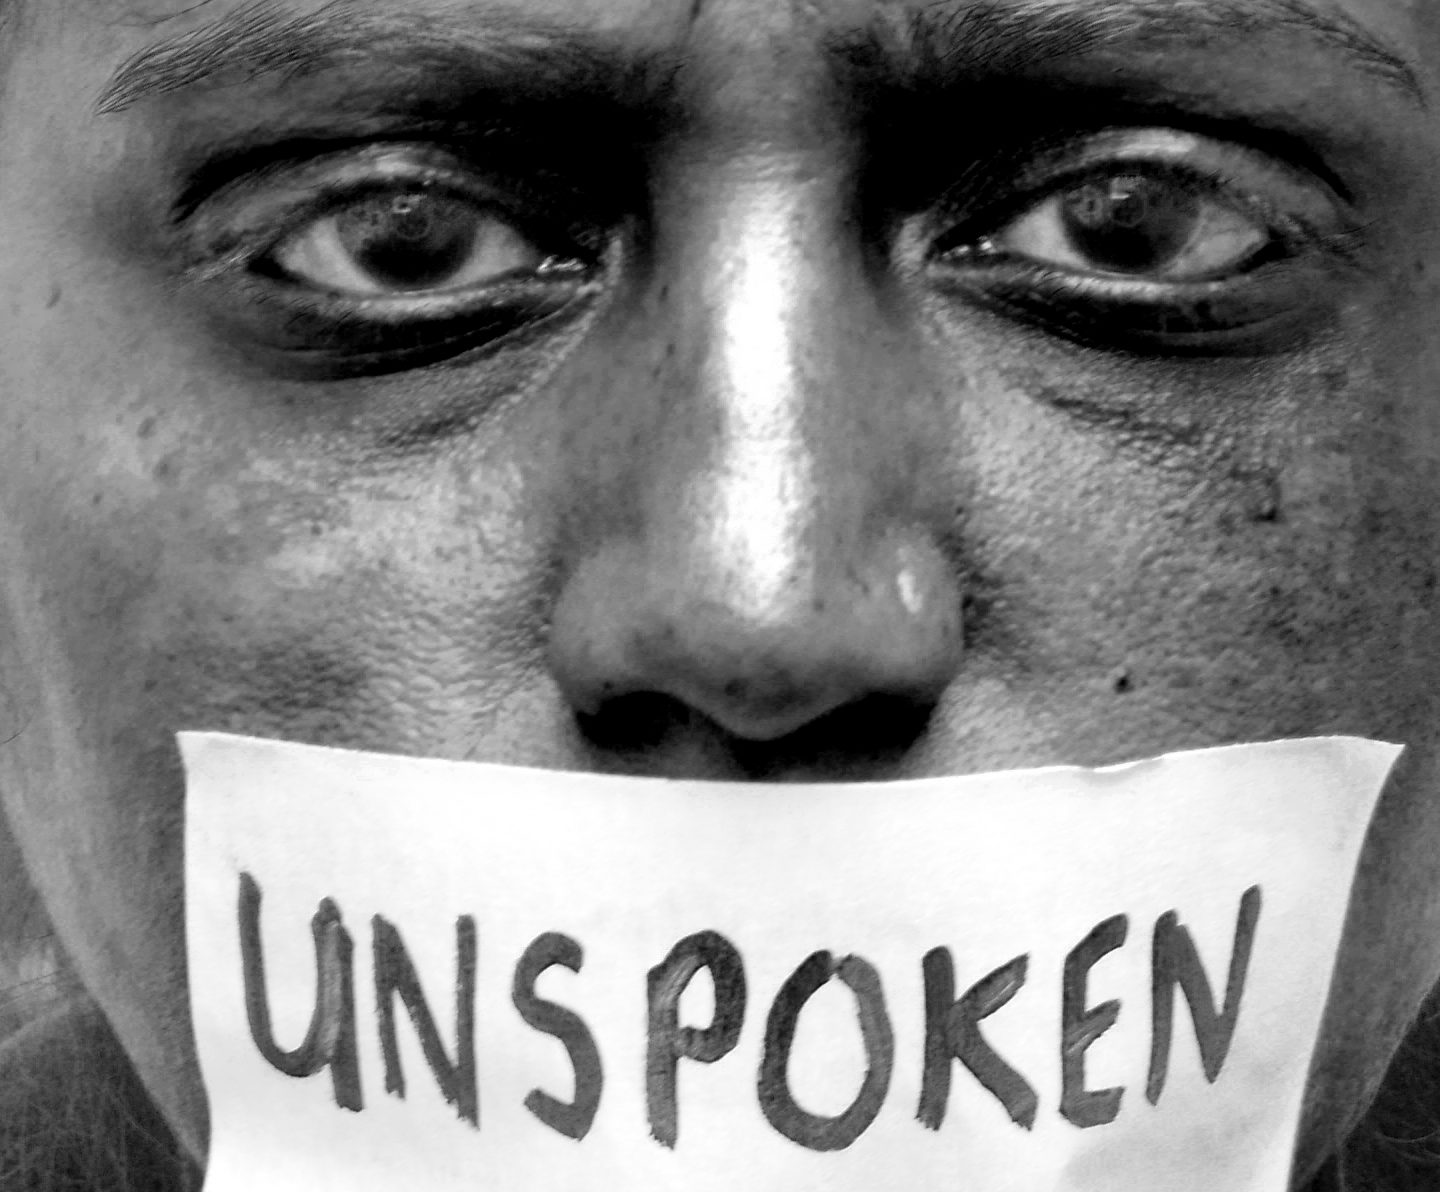 Unspoken – A Collaboration with Southall Black Sisters